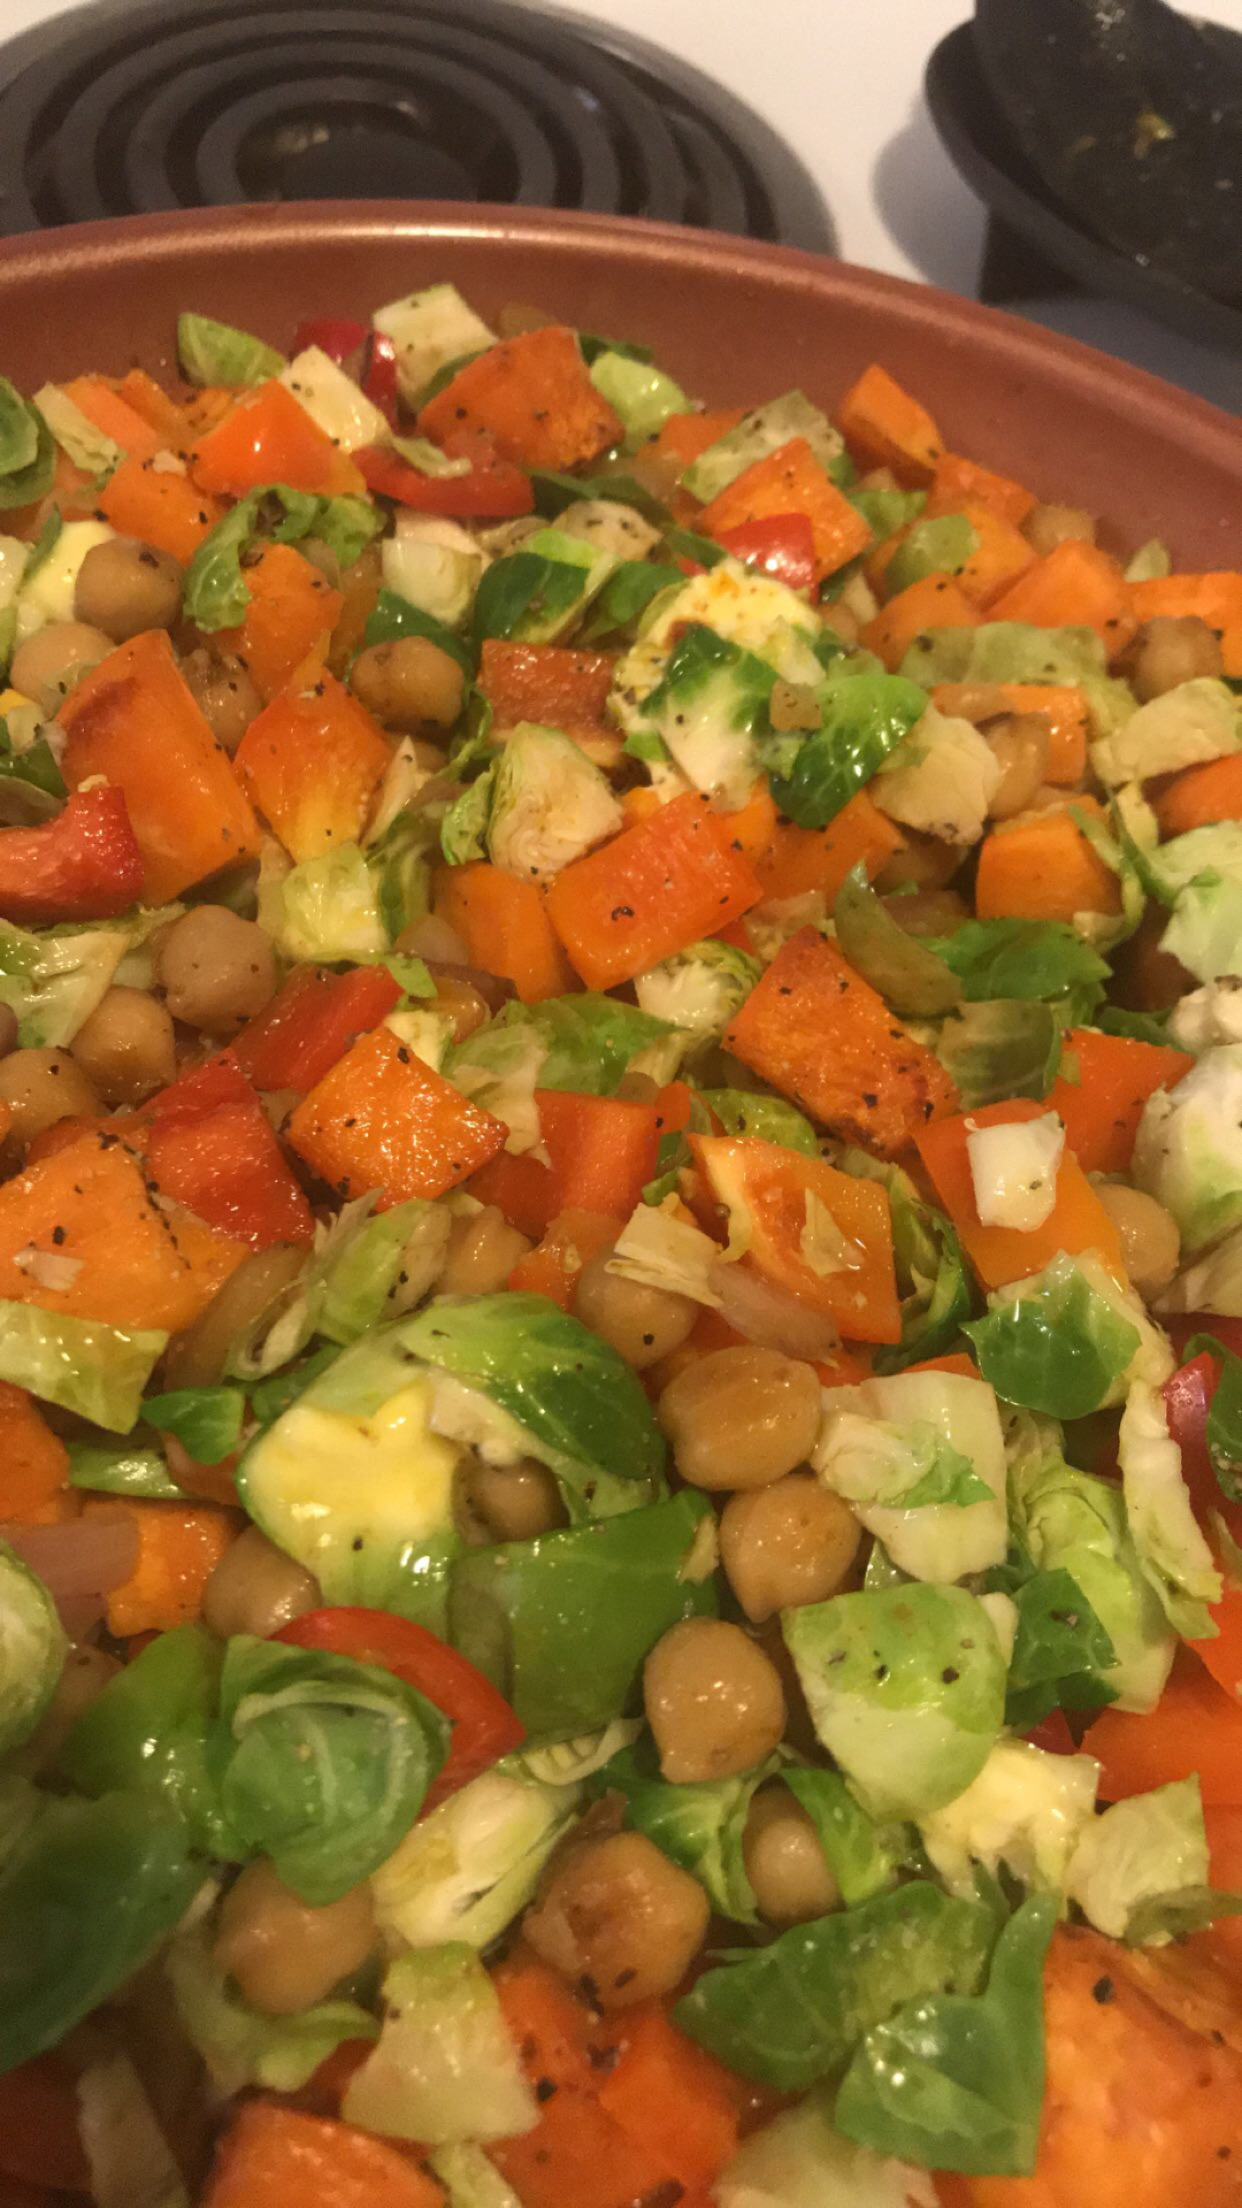 Vegan Cajun Chickpeas and Sauteed Vegetables